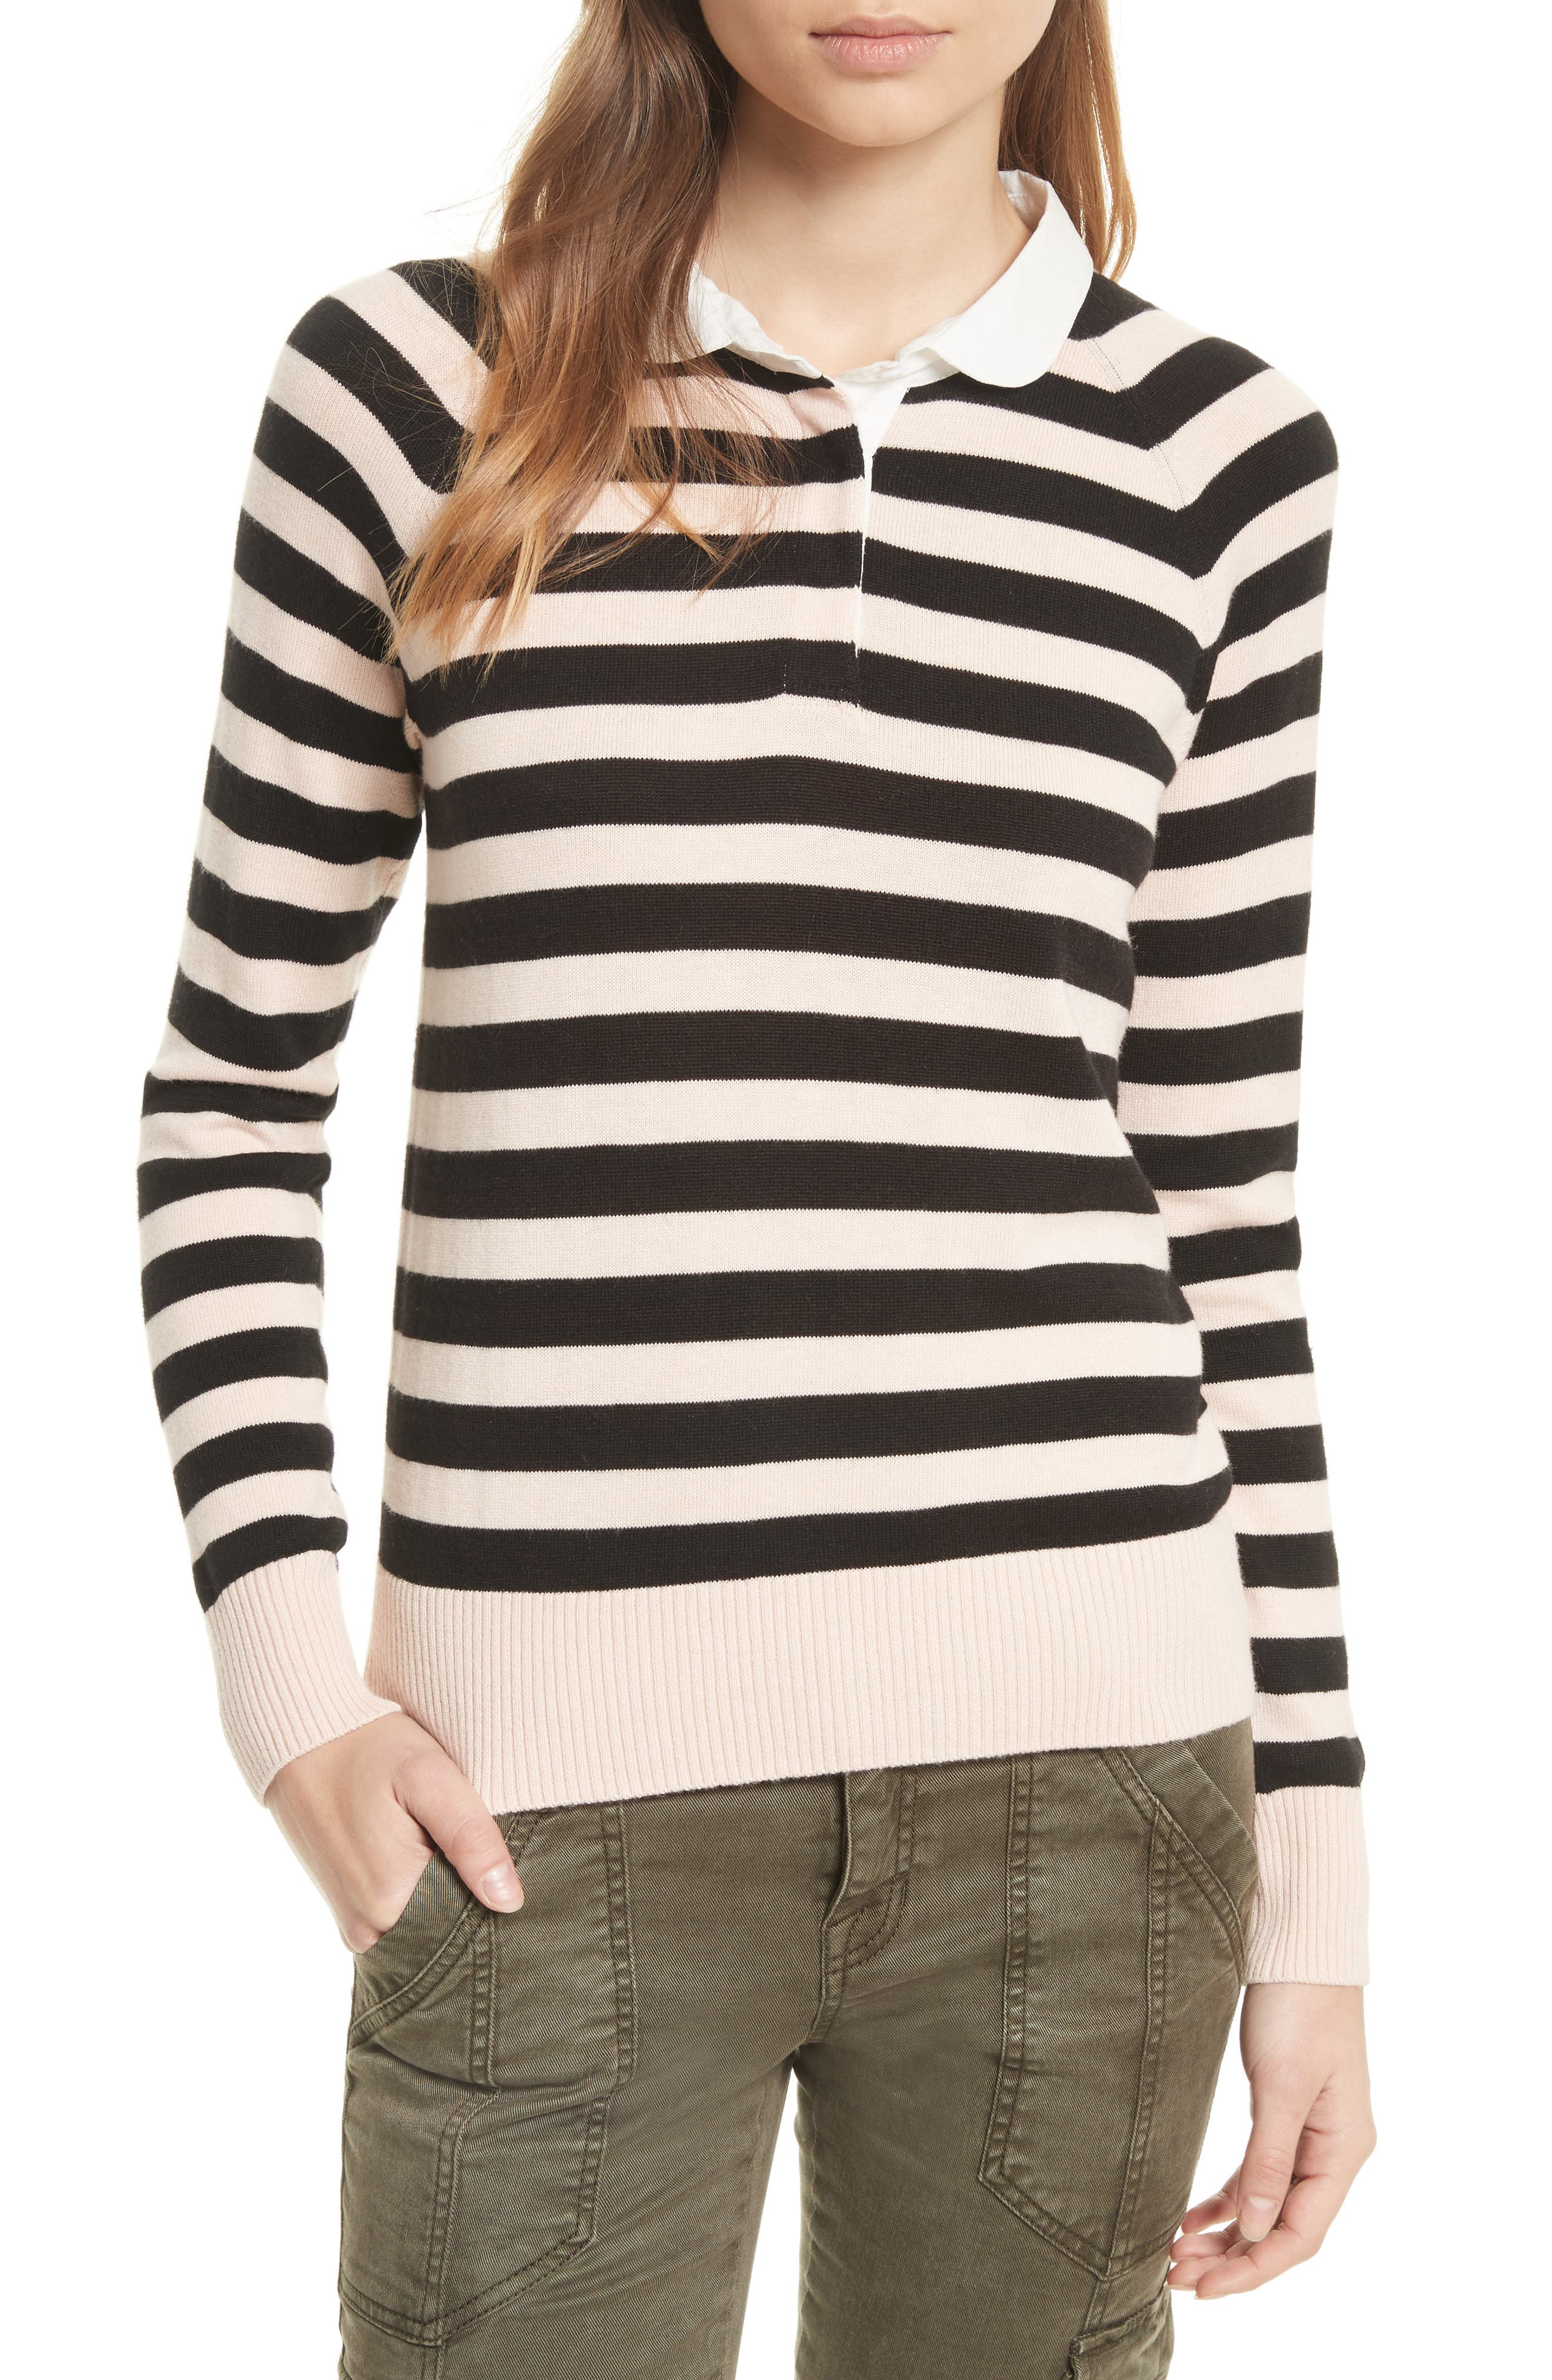 Joie Gabbe Stripe Sweater